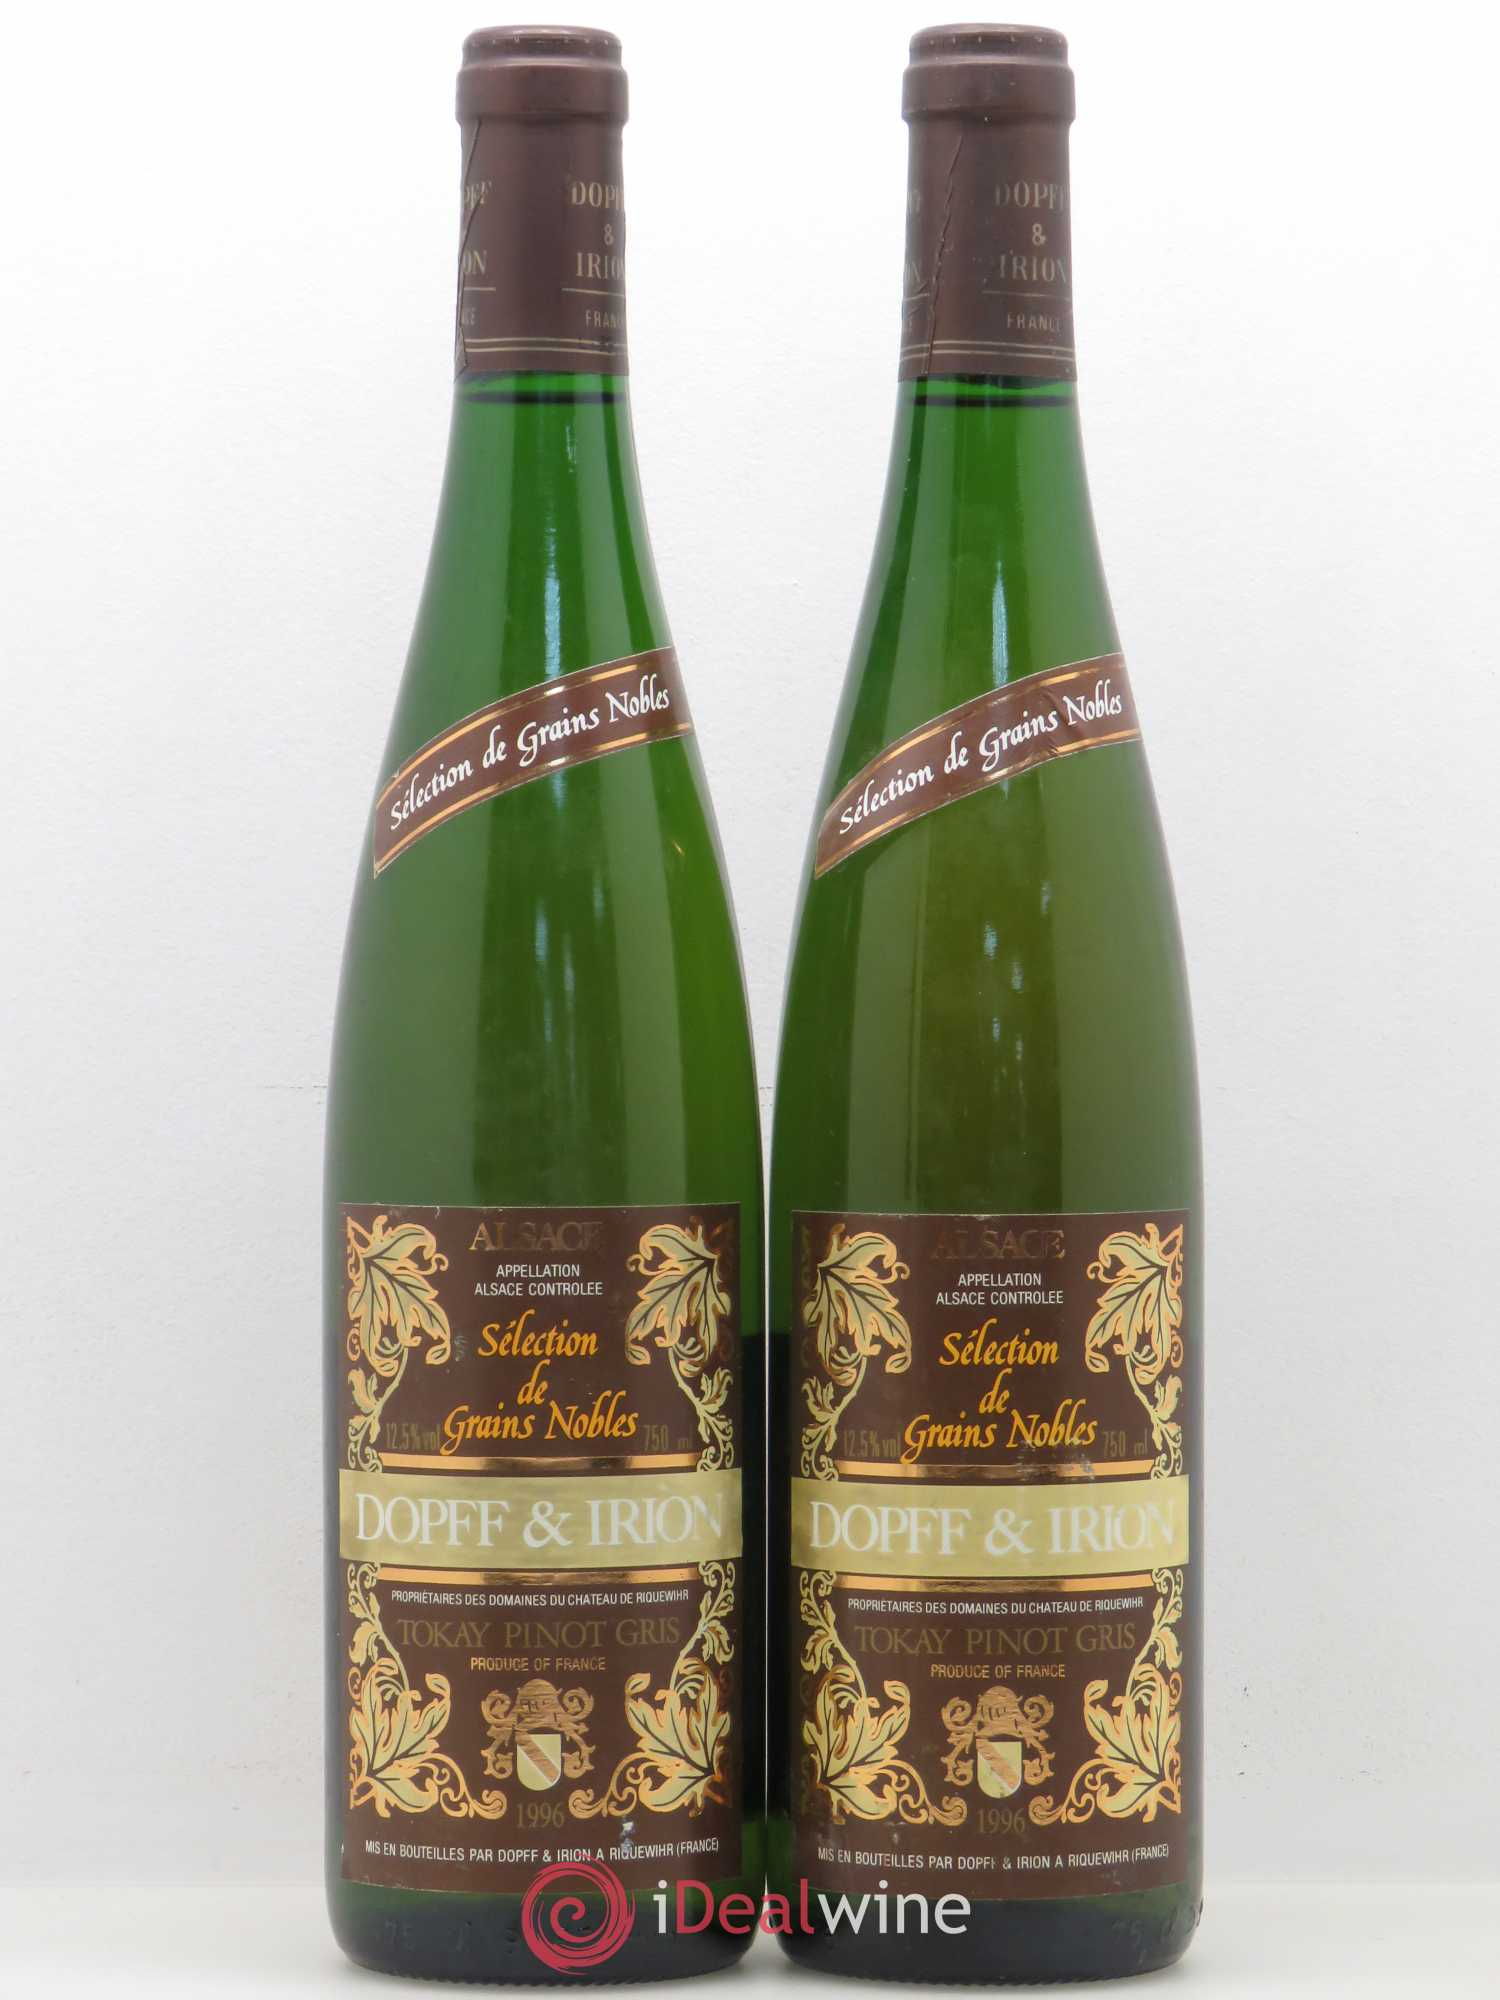 Pinot Gris (Tokay) Sélection de grains nobles Dopff et Irion 1996 - Lot of 2 Bottles